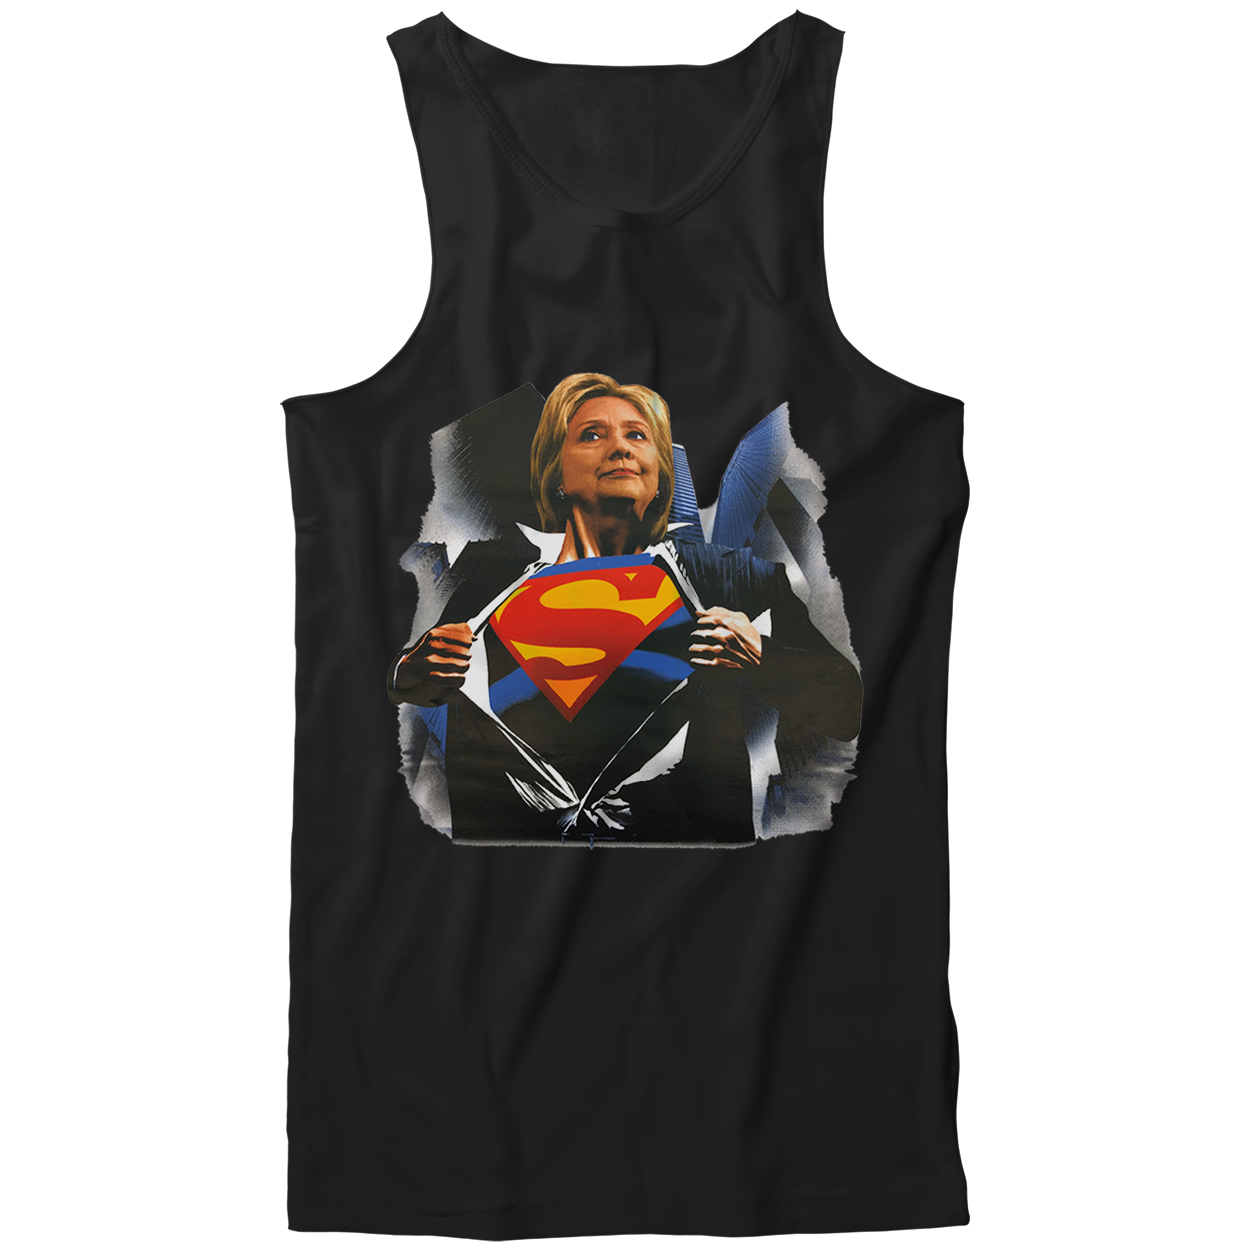 Super Hillary Election 2016 Tank Top